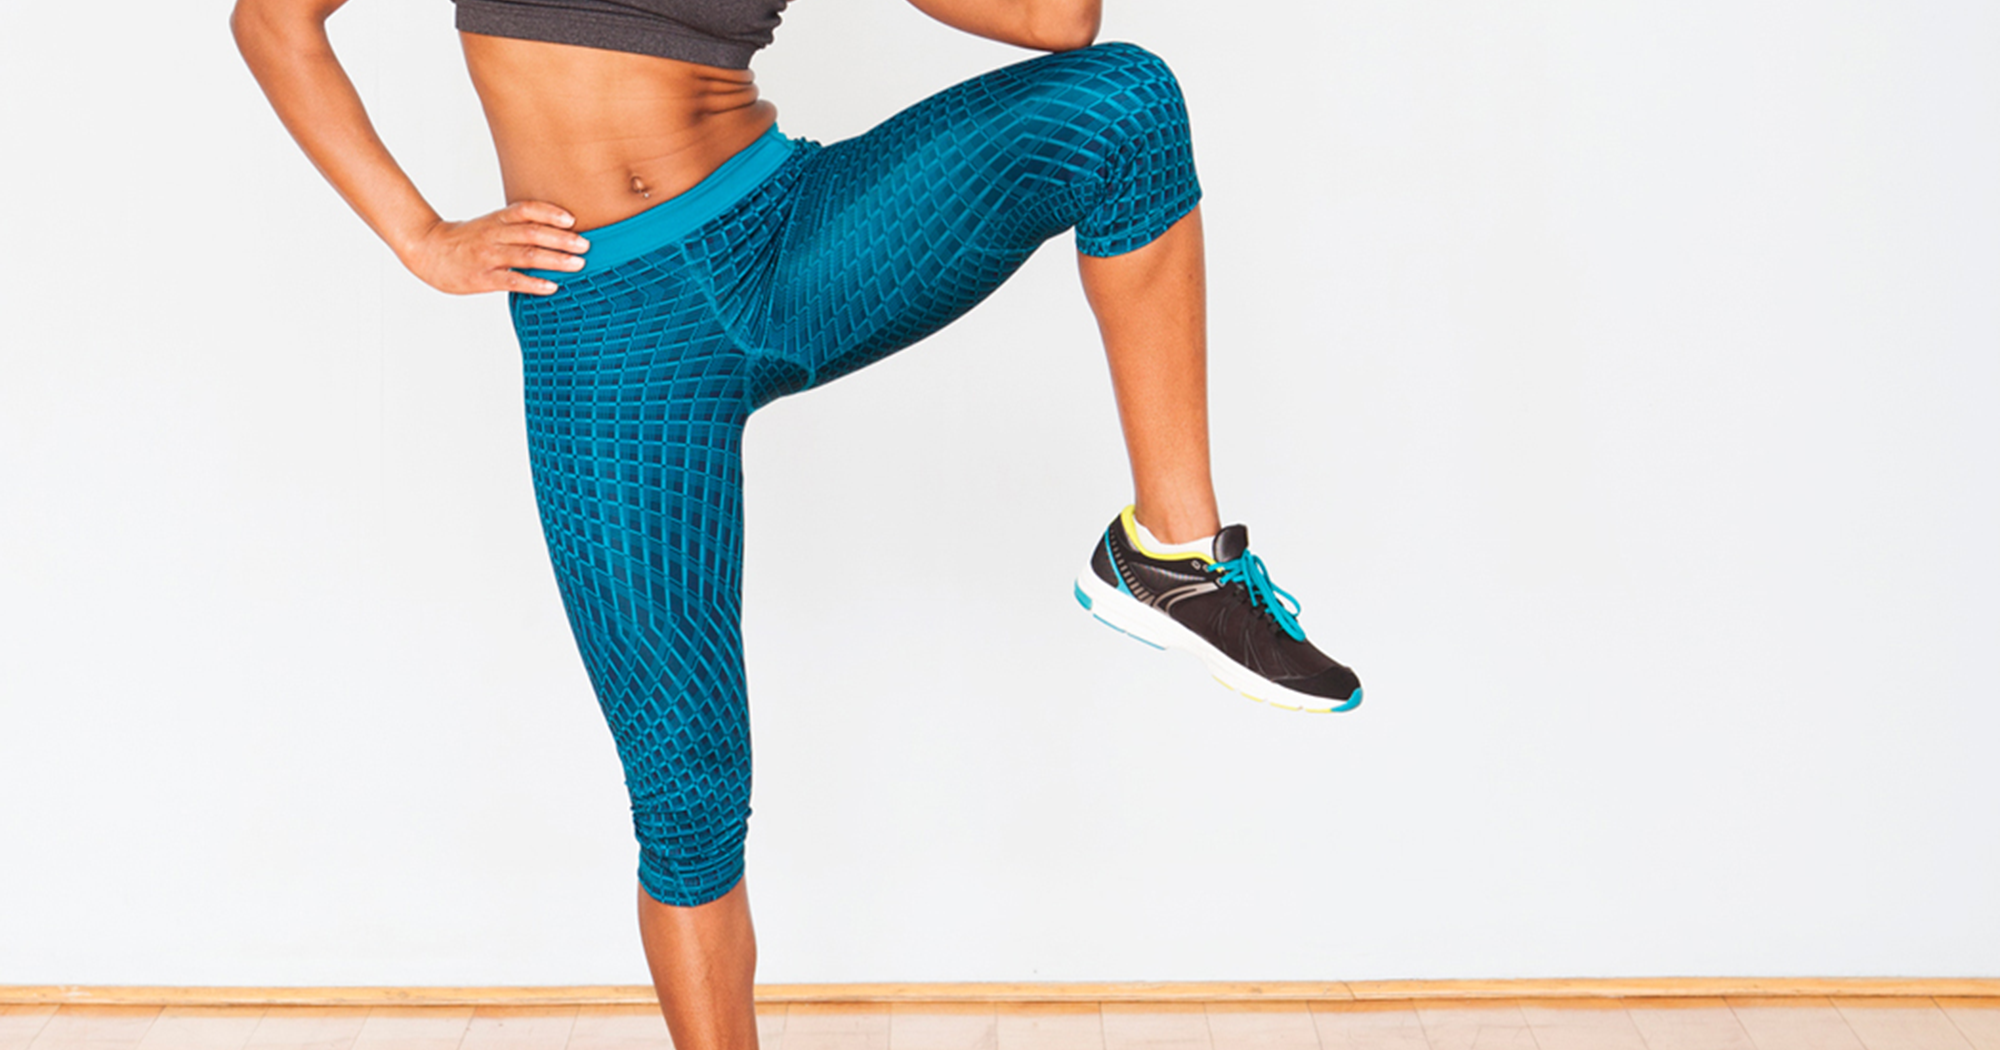 Easy Cardio Dance Videos You Can Do In Your Living Room